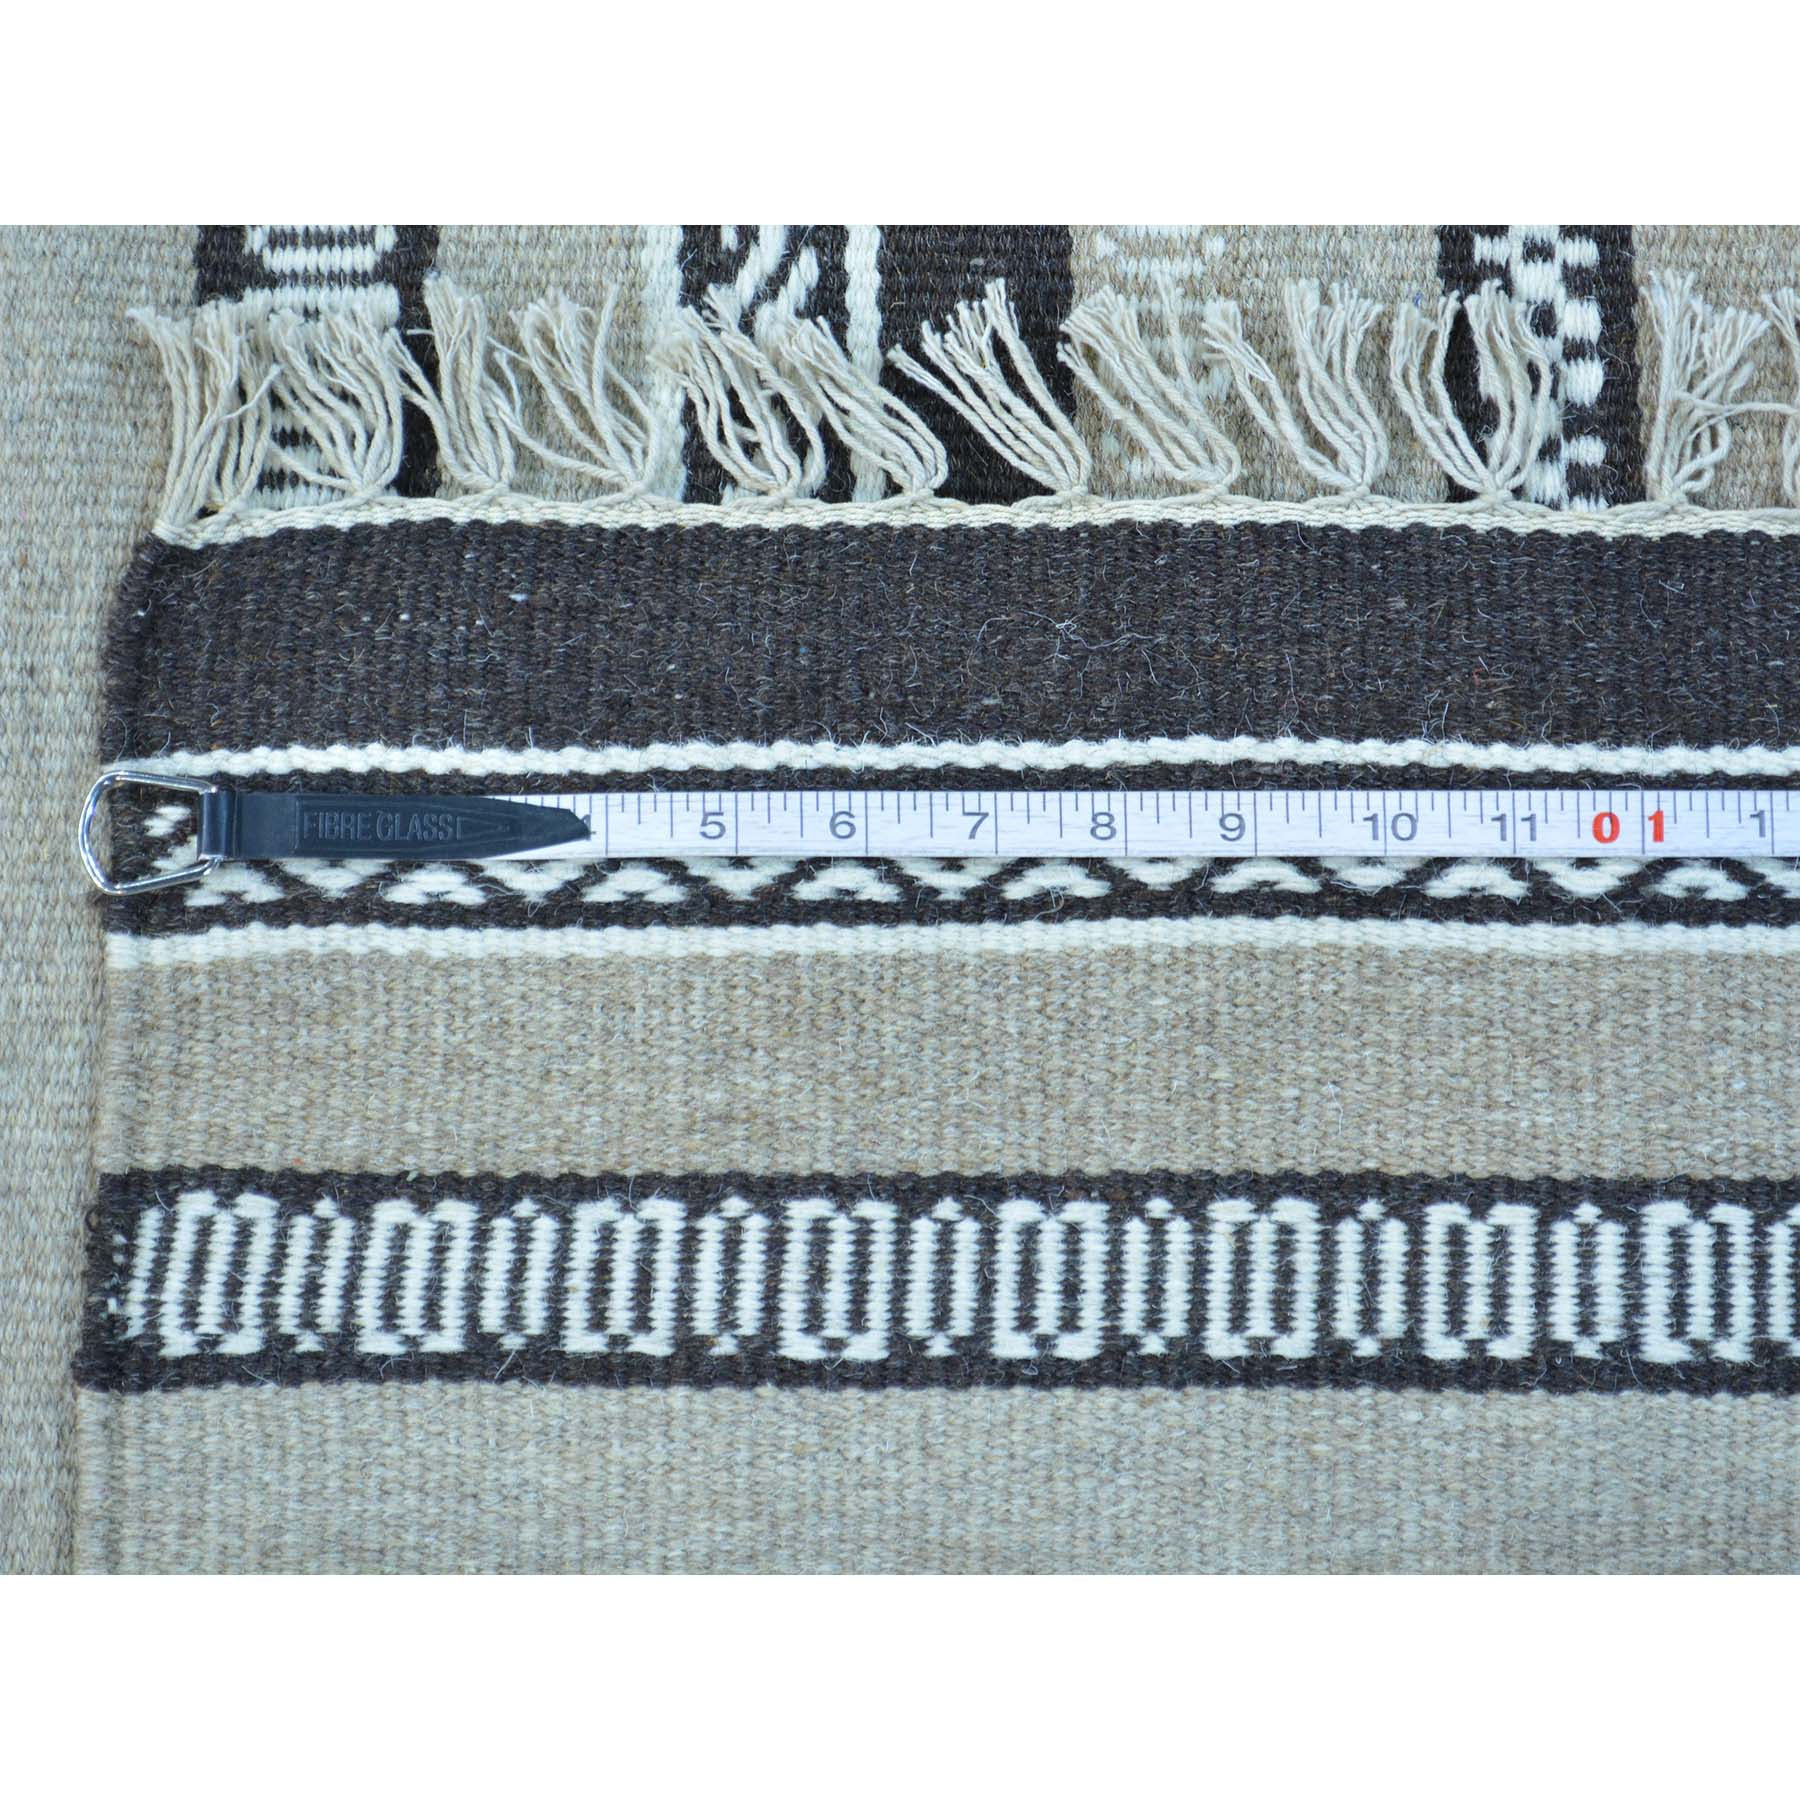 "Handmade Flat Weave Rectangle Rug > Design# SH30036 > Size: 4'-0"" x 5'-10"" [ONLINE ONLY]"